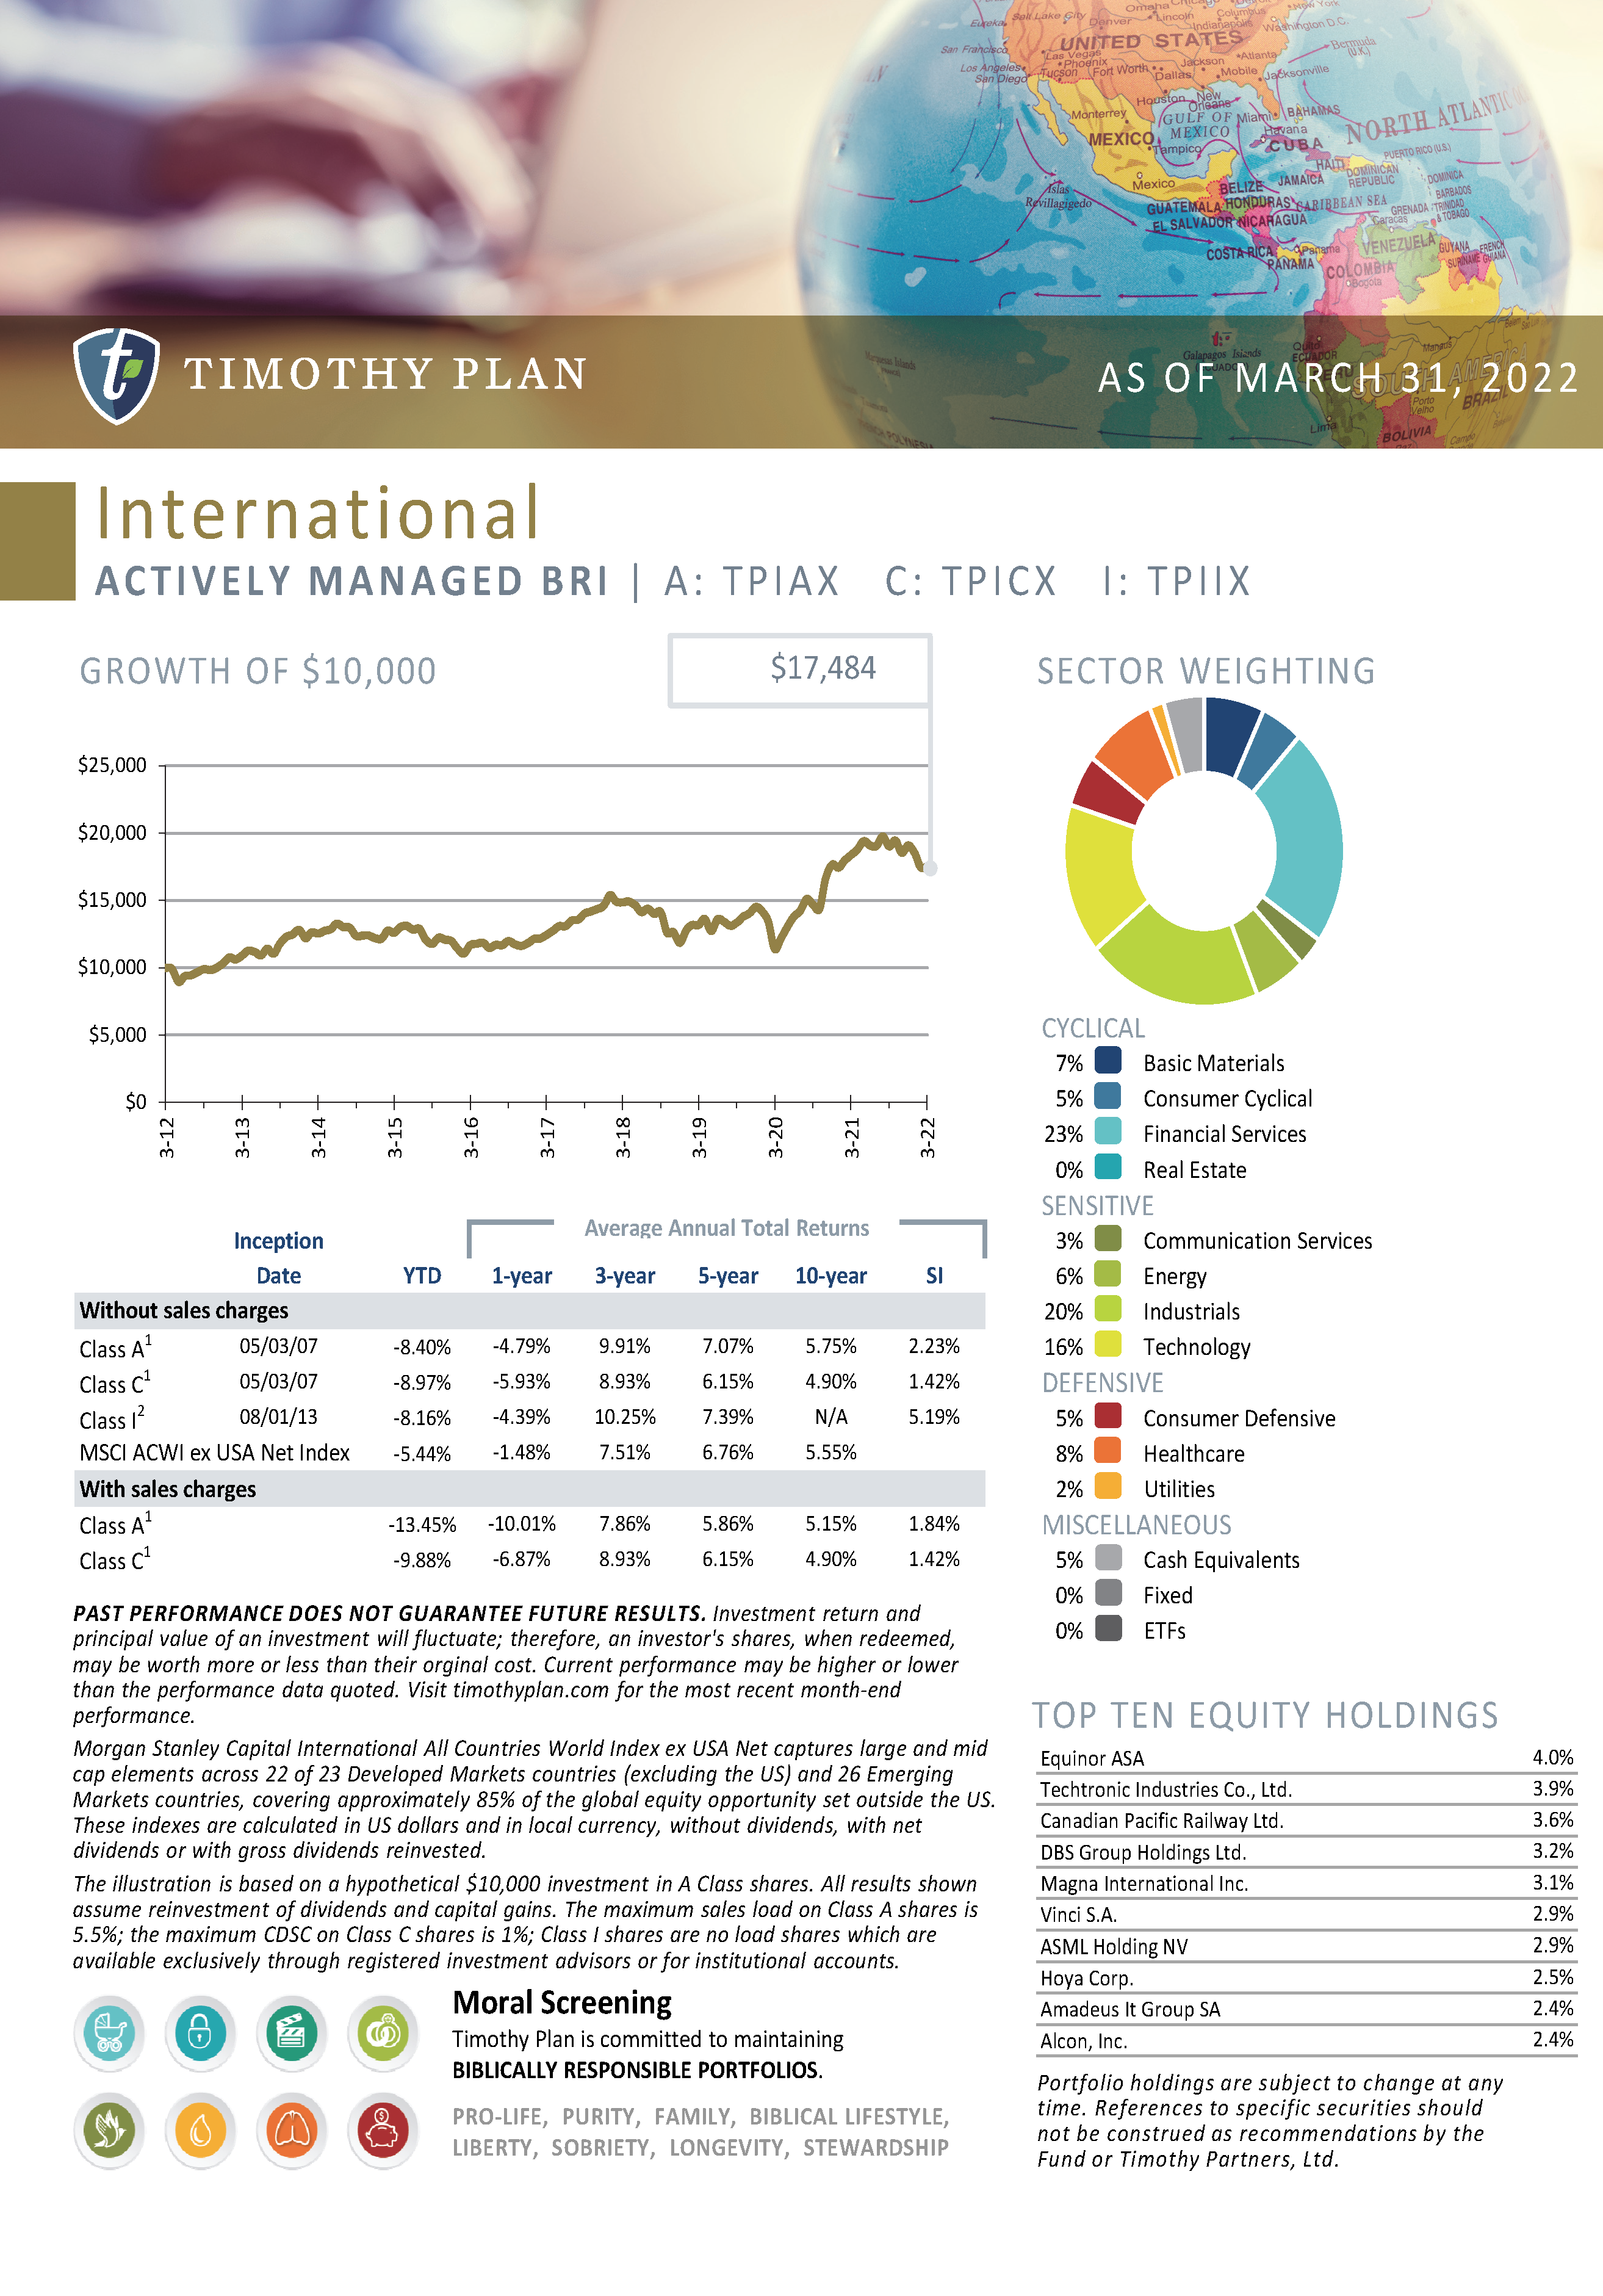 International Fund page 15